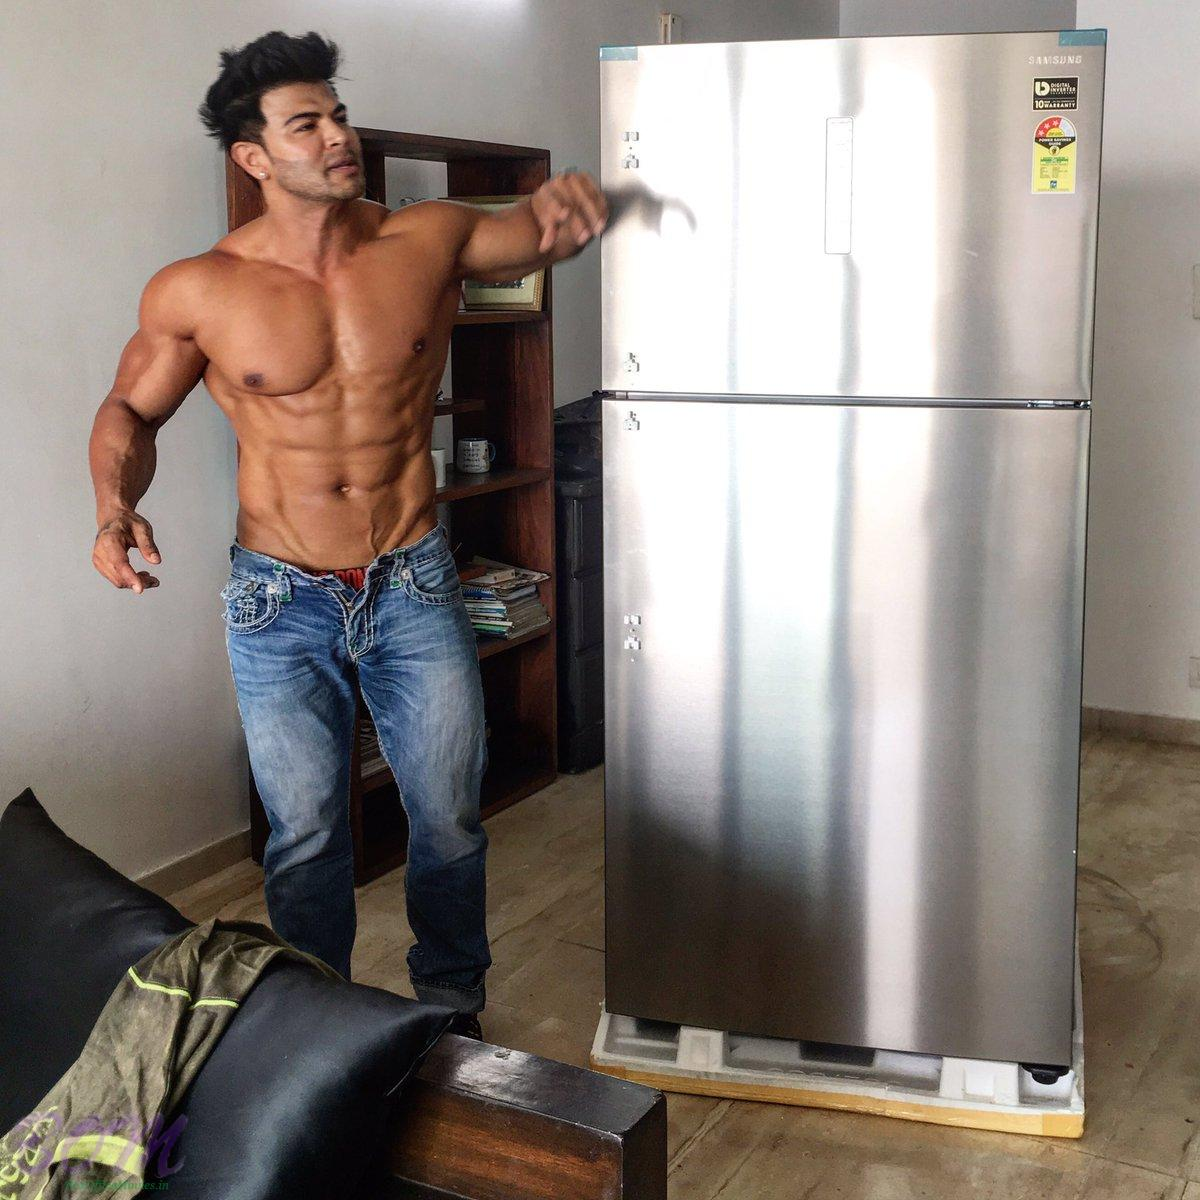 Sahil Khan with his refrigerator